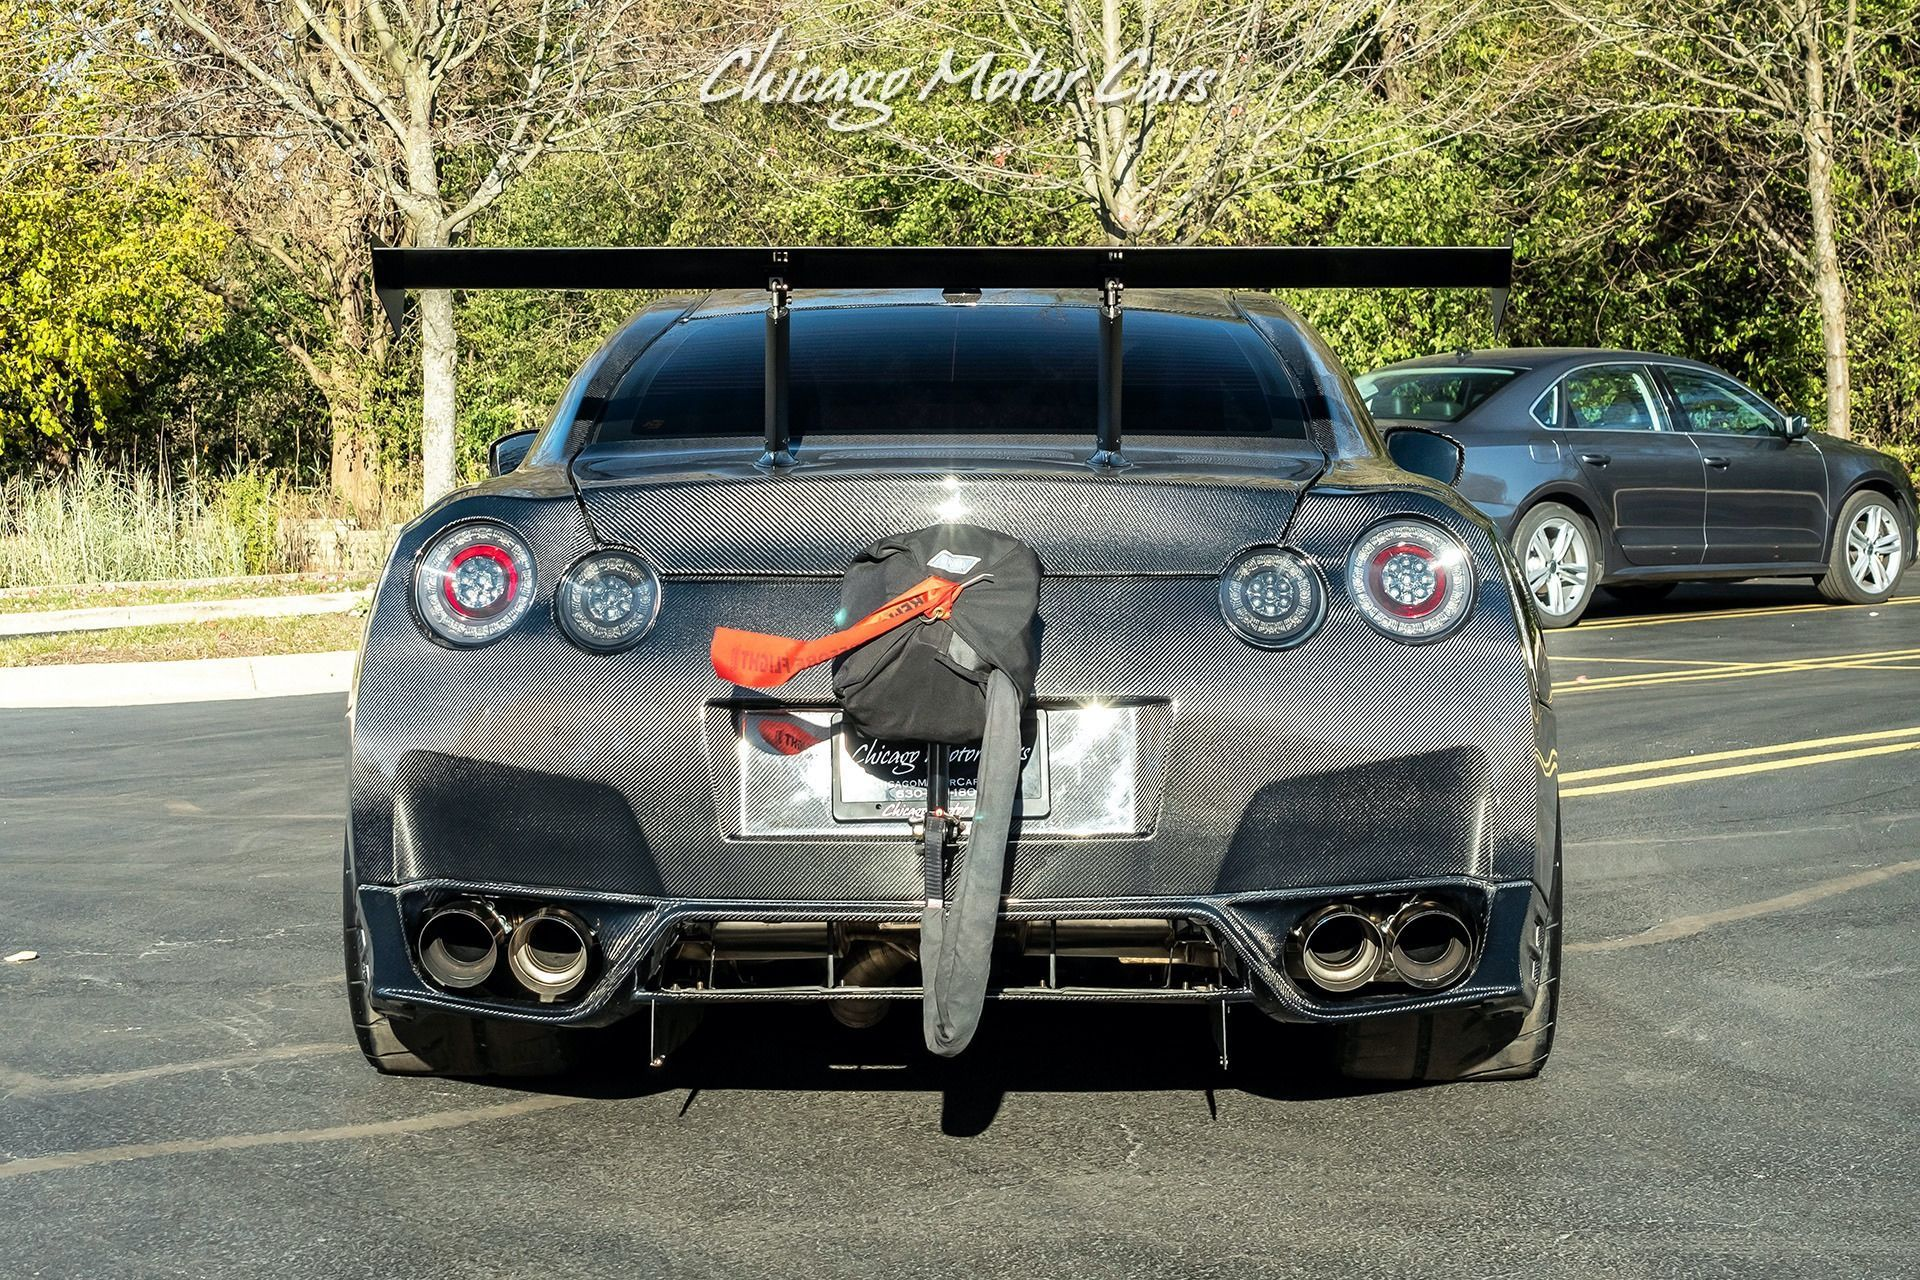 full-carbon_Nissan_GT-R_tuned_0003